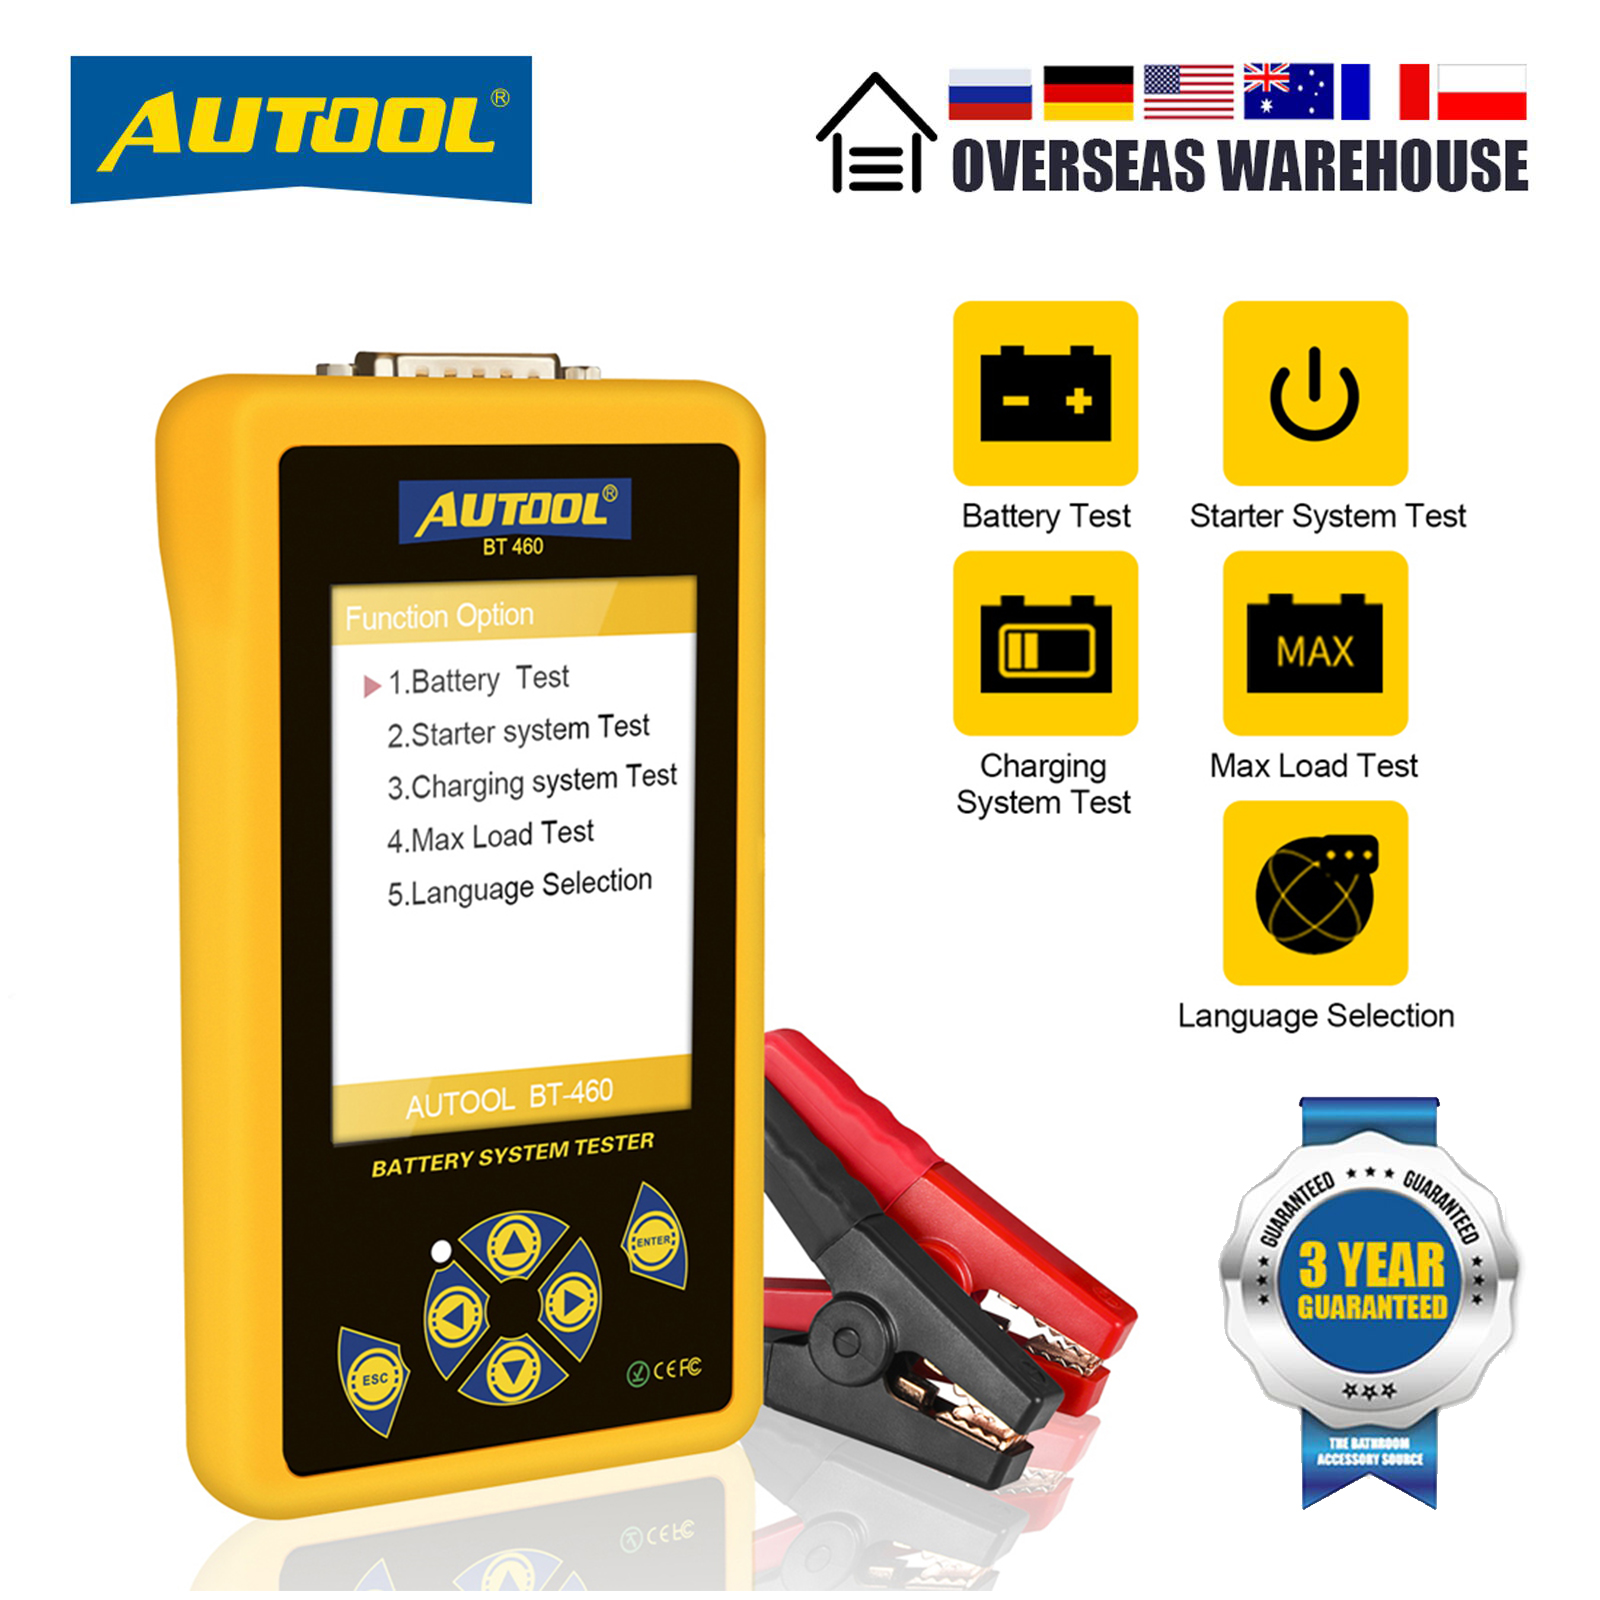 AUTOOL BT460 Car Battery Tester 12V 24V Multifunction Battery Charging System Analyzer Test With 4inch Colorful Display for Car